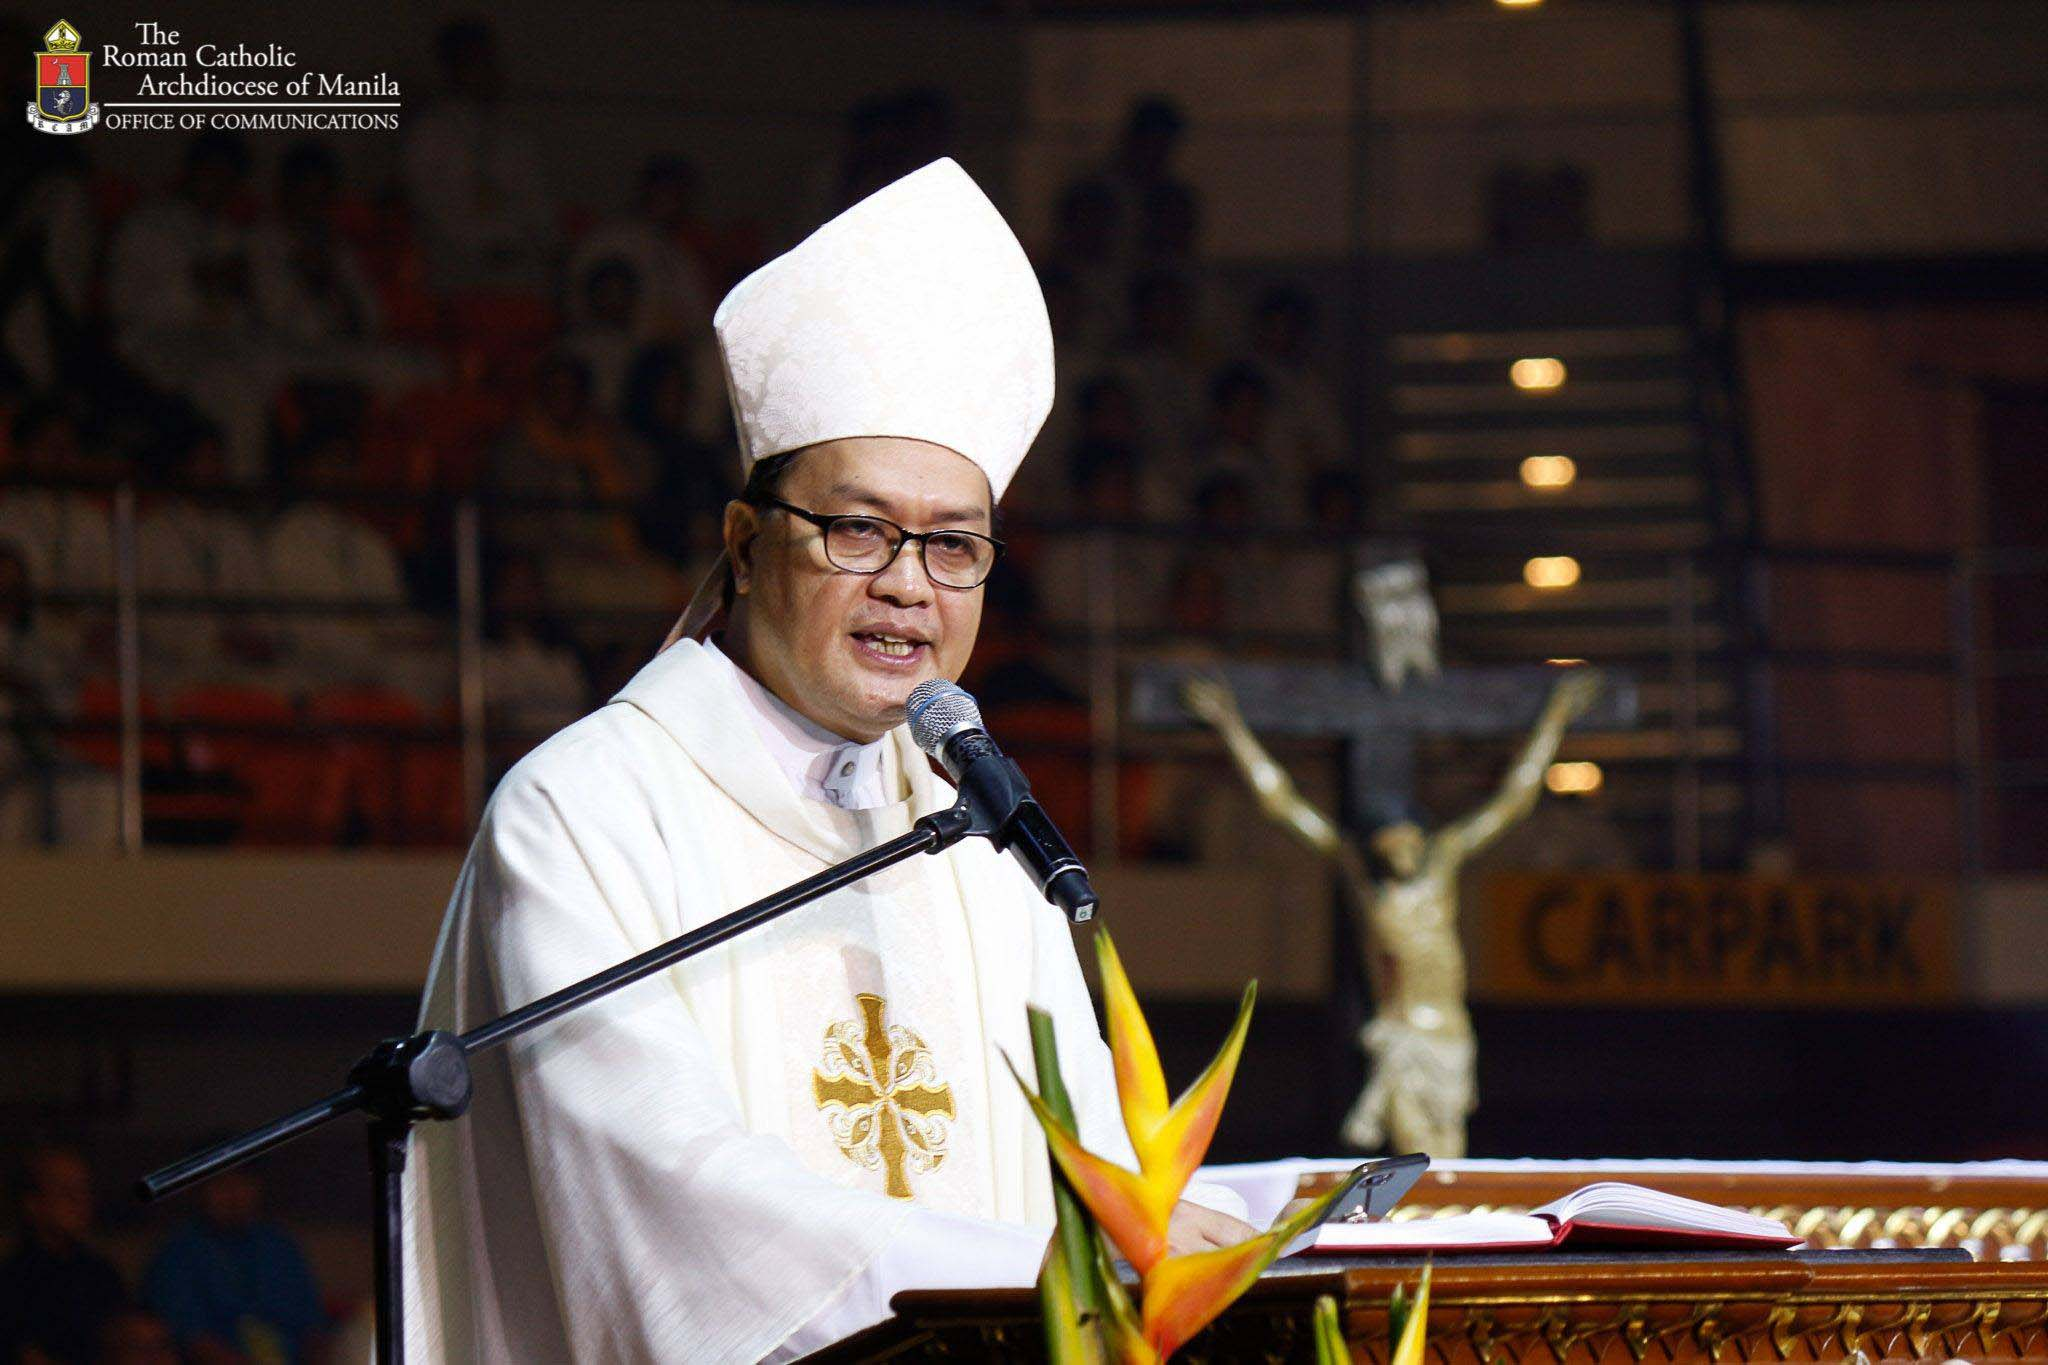 CBCP releases statement on Red-tagging and Charter change